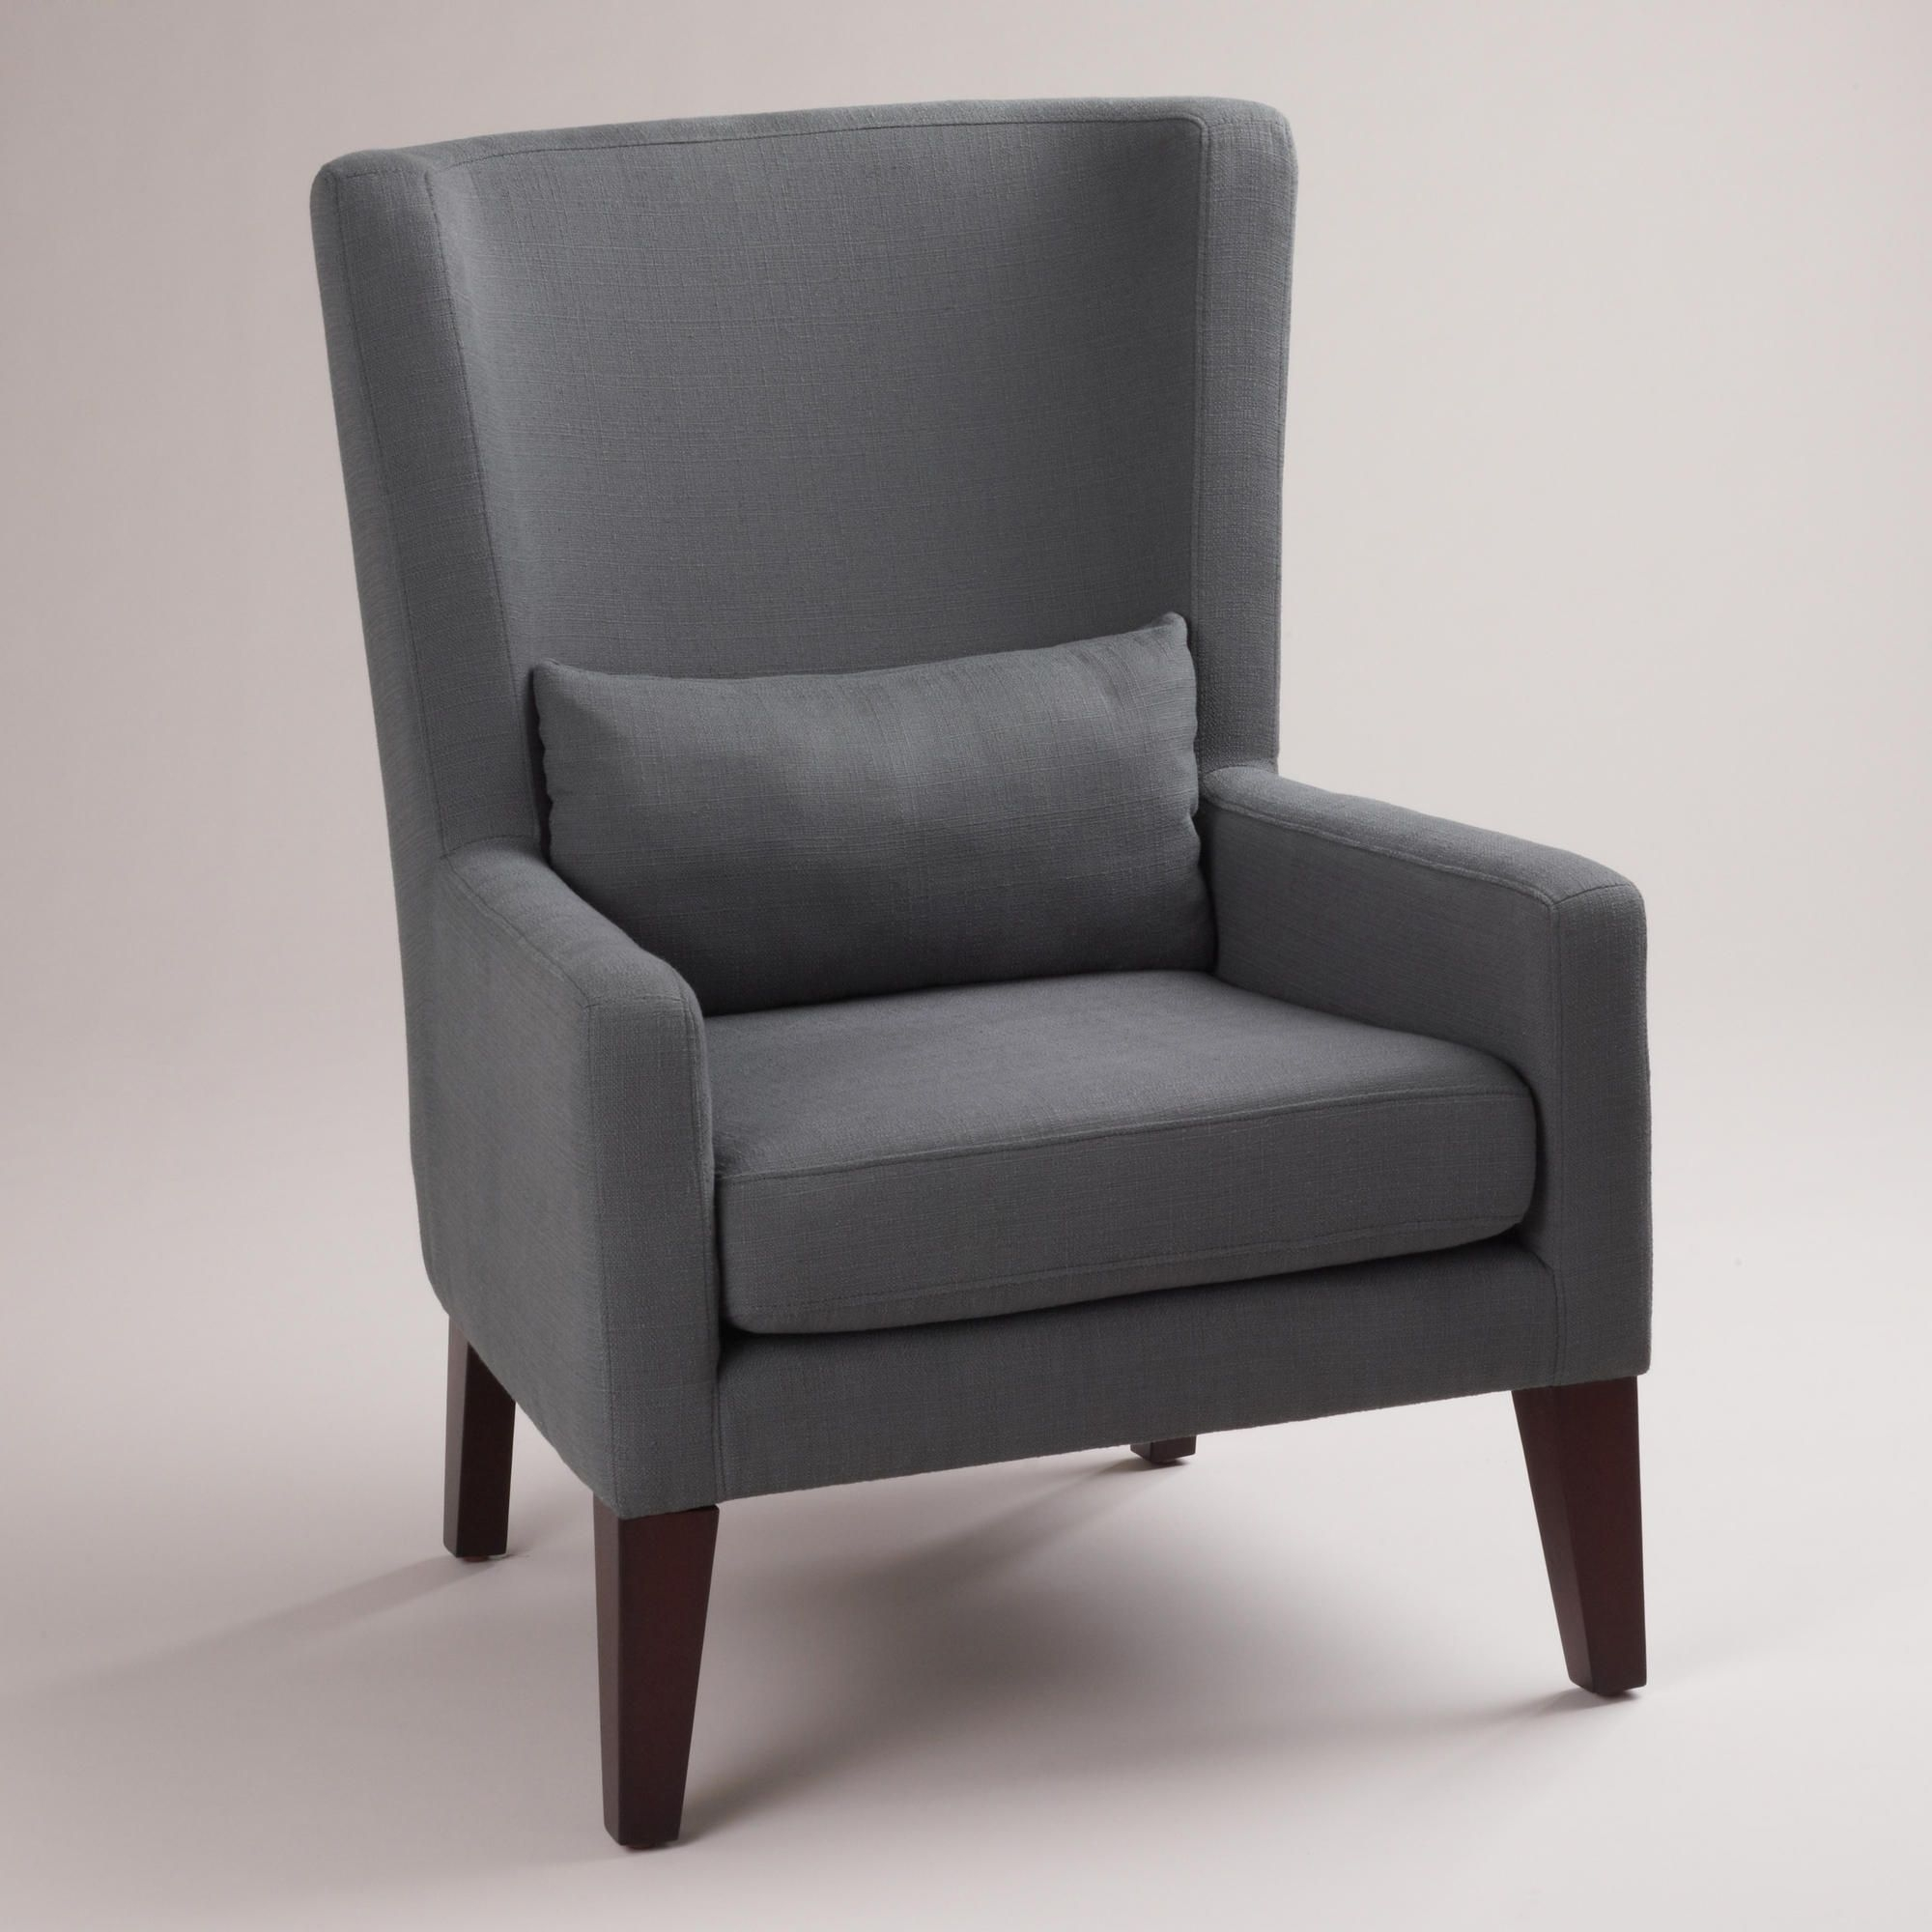 $349 (Comes In A Couple Of Colors) Dove Gray Triton High Back Pertaining To Best And Newest Lindy Dove Grey Side Chairs (View 1 of 20)